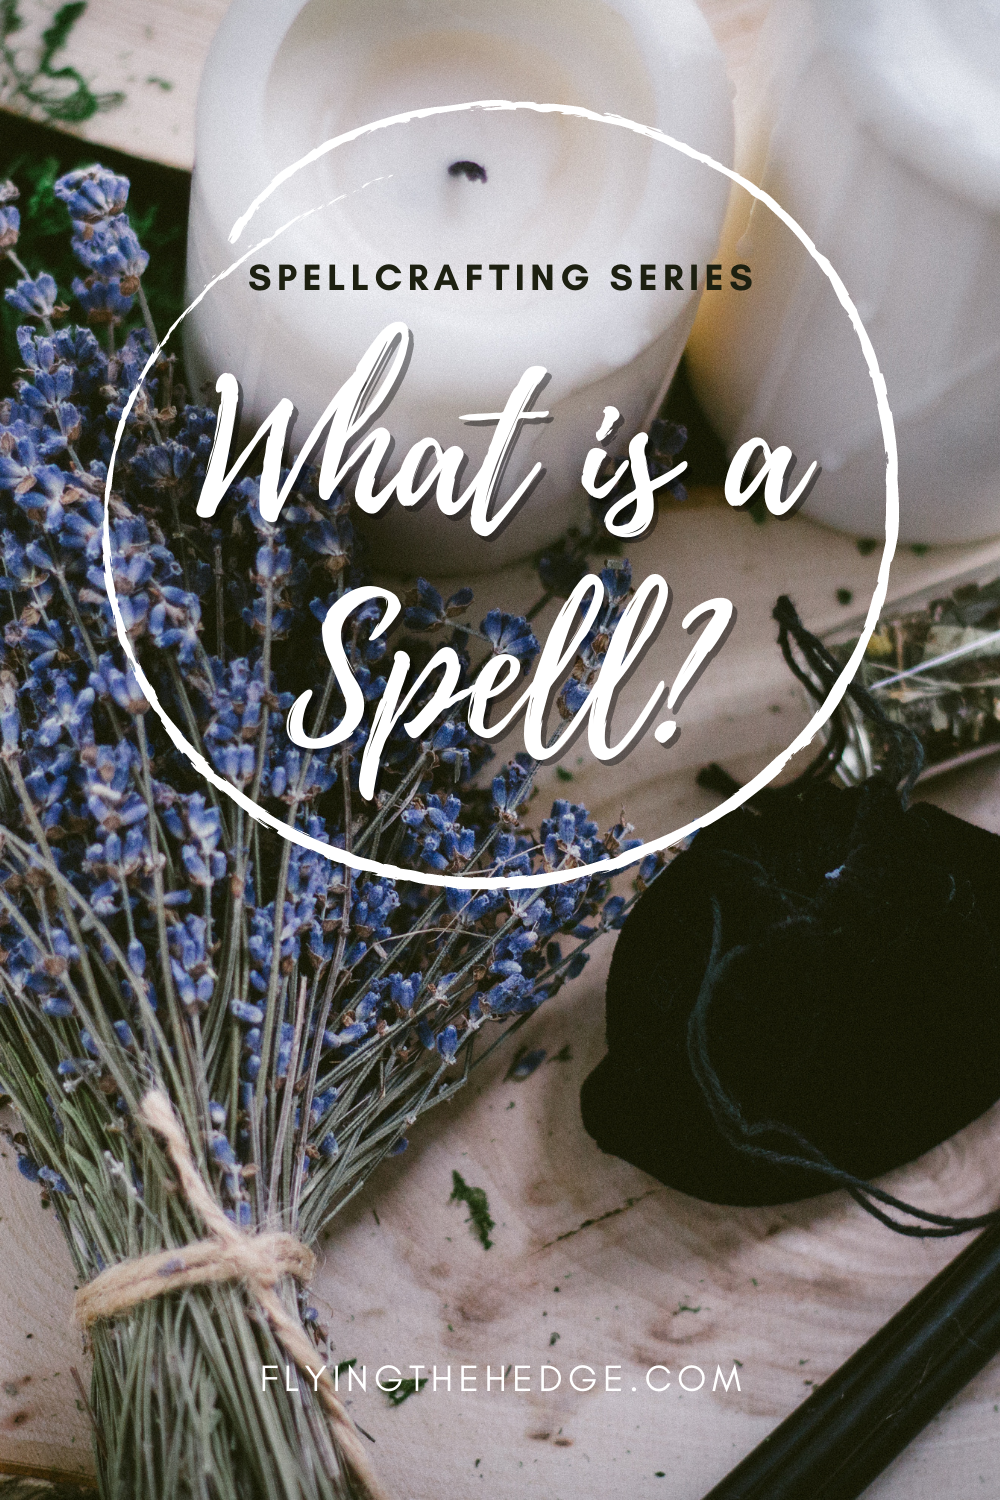 spellcrafting, spell writing, spell casting, spell, magick, magic, witchcraft, witch, hedgewitch, ritual, witchy, occult